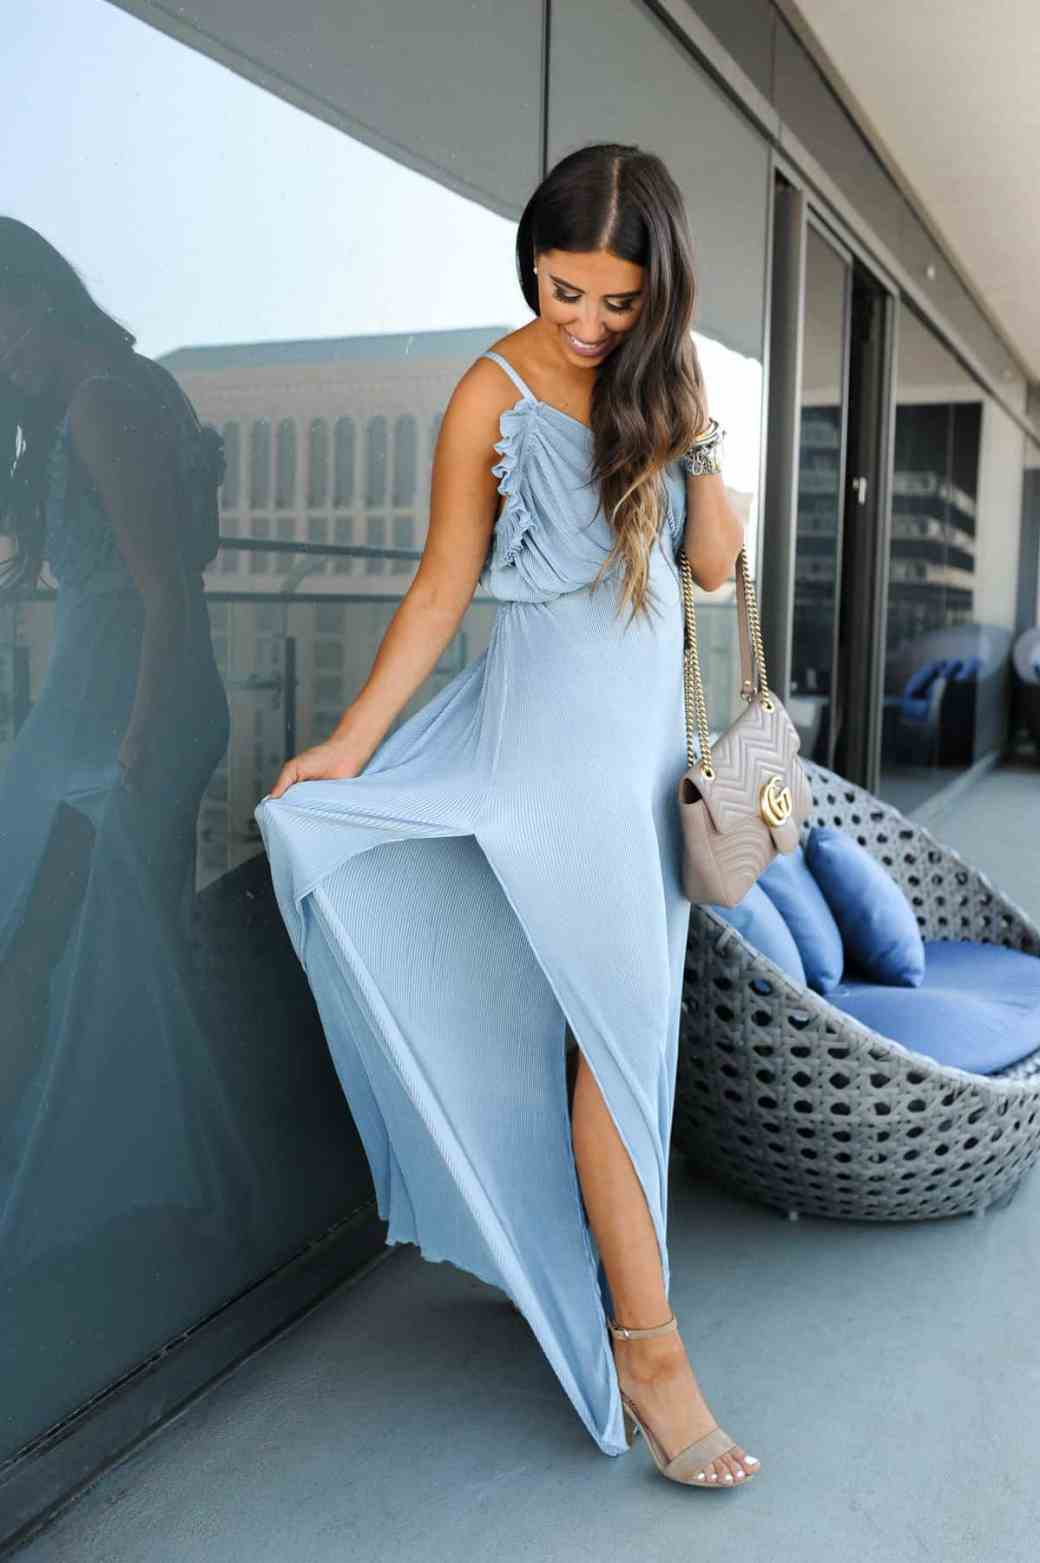 dress up buttercup 4 of 8 - Pleated Blue Maxi